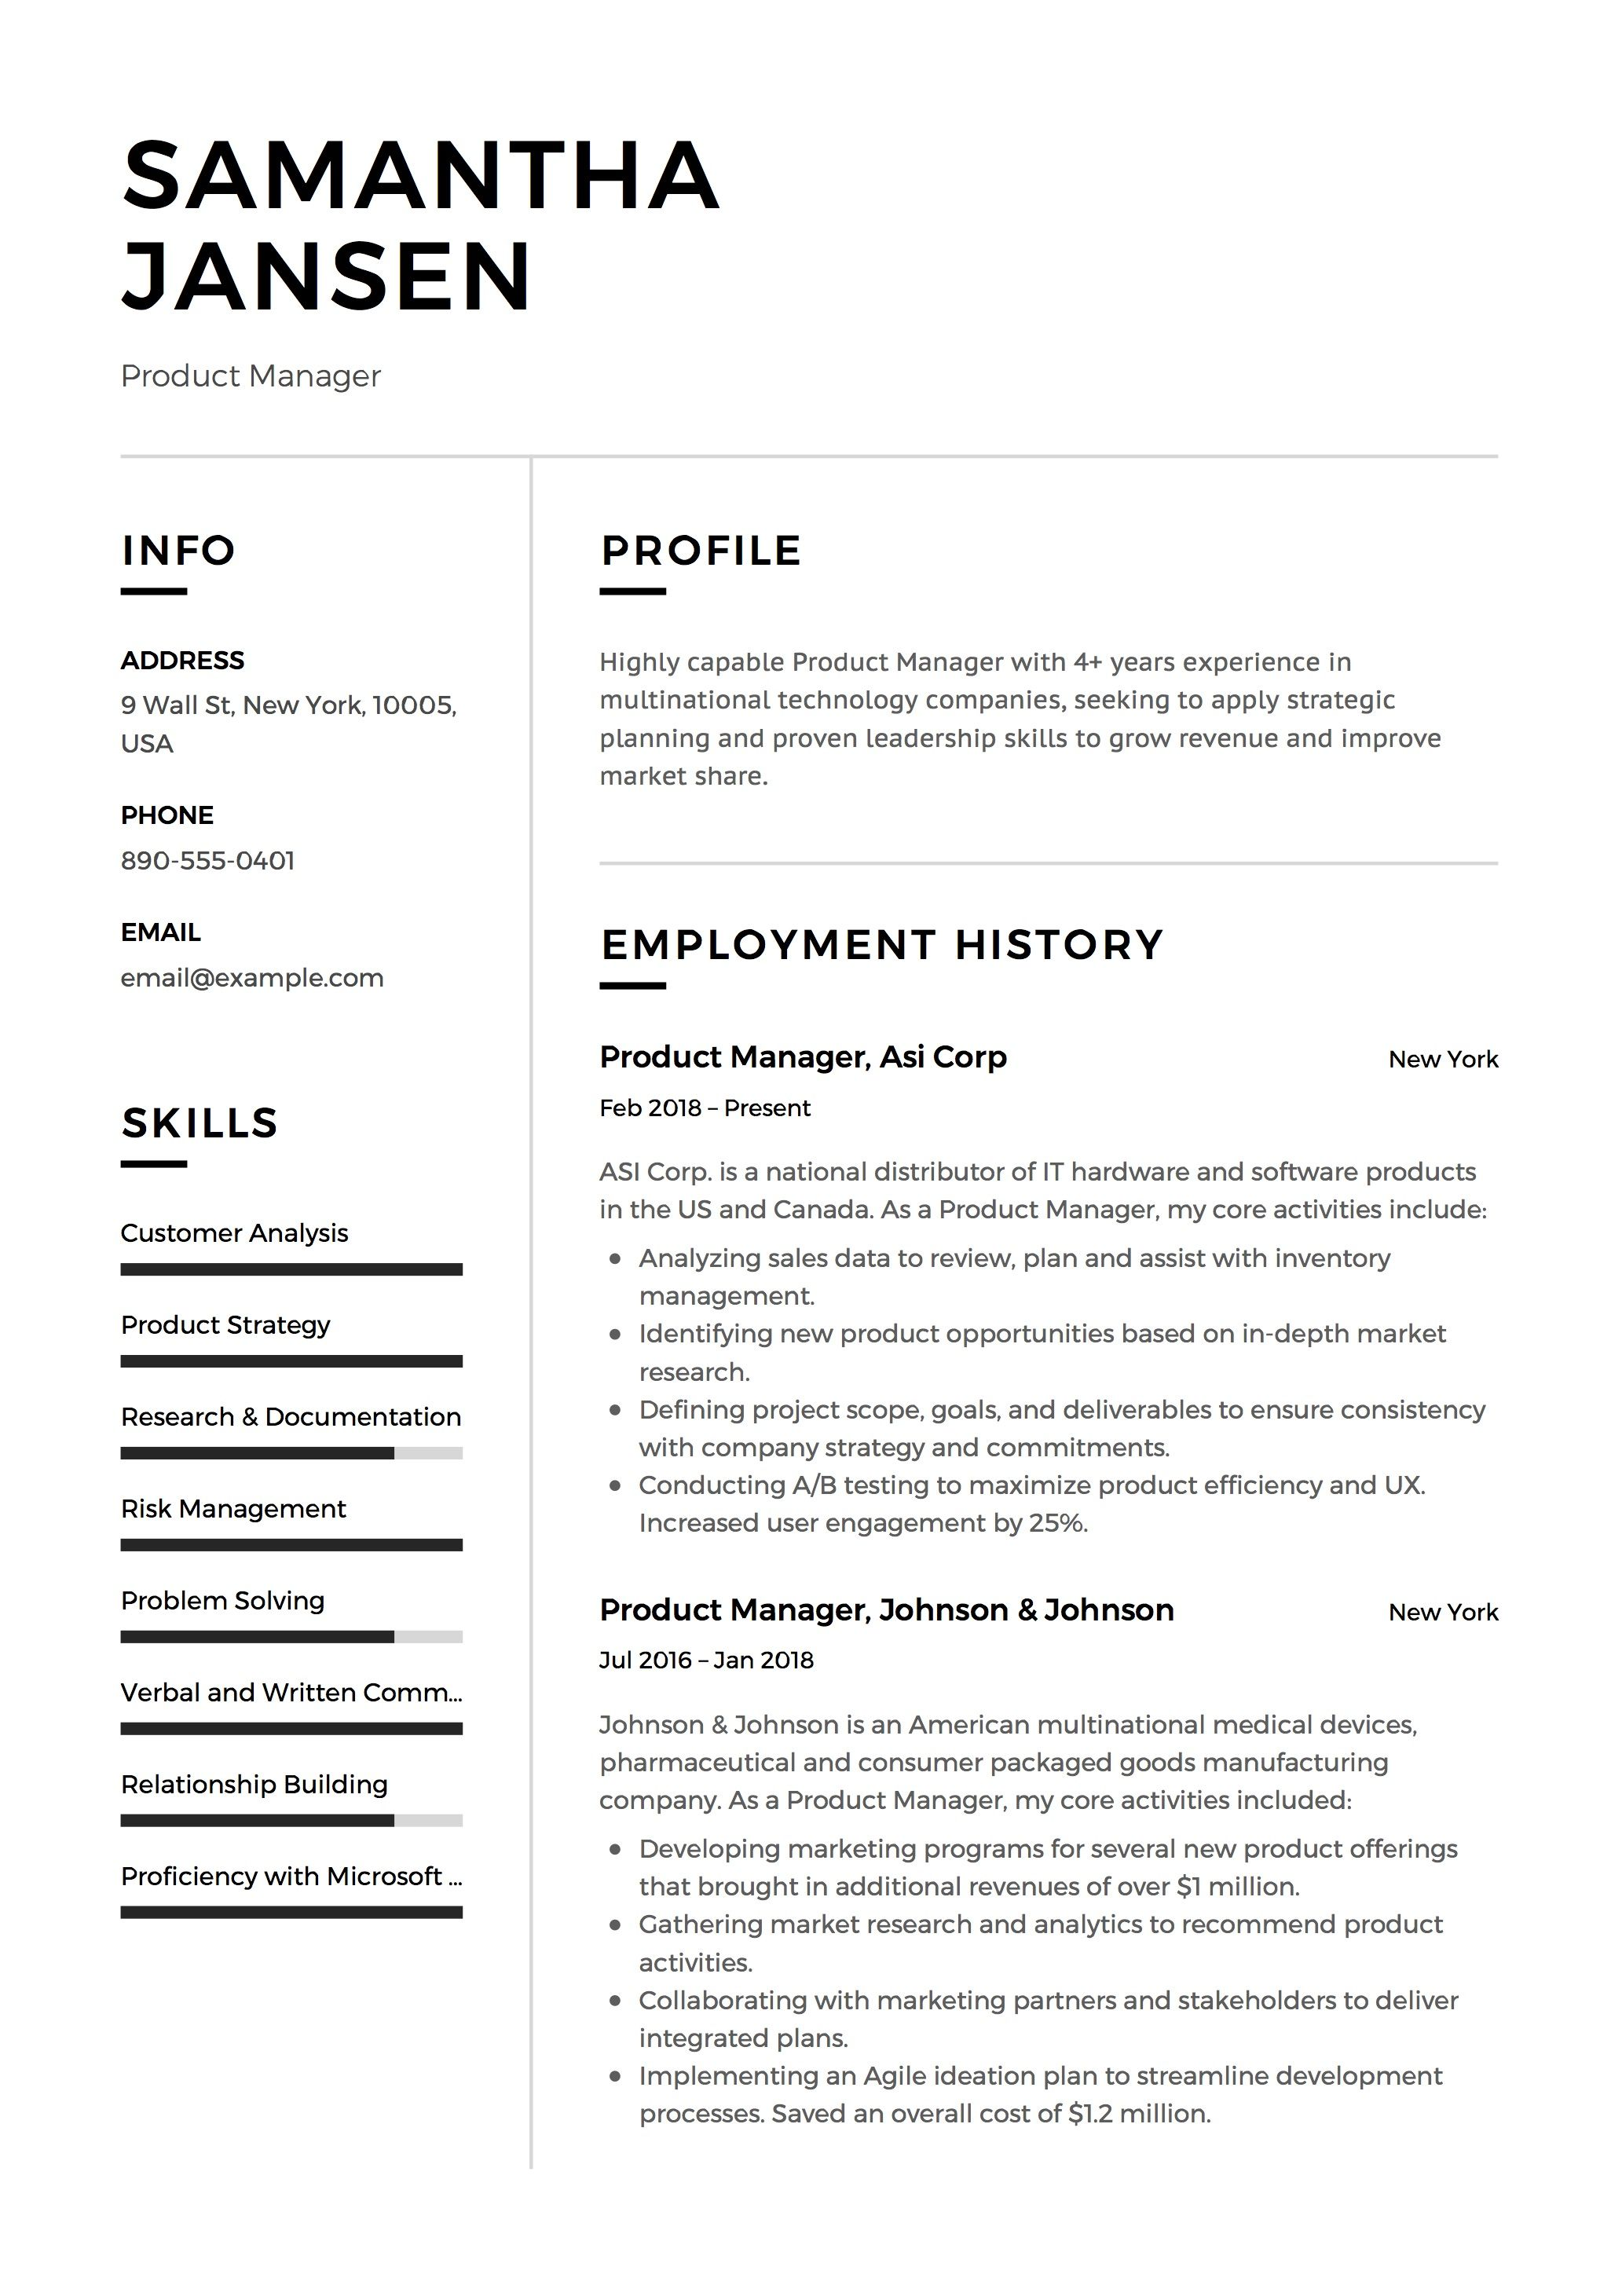 Product Manager Resume Sample, Template, Example, CV, Formal, Design ...